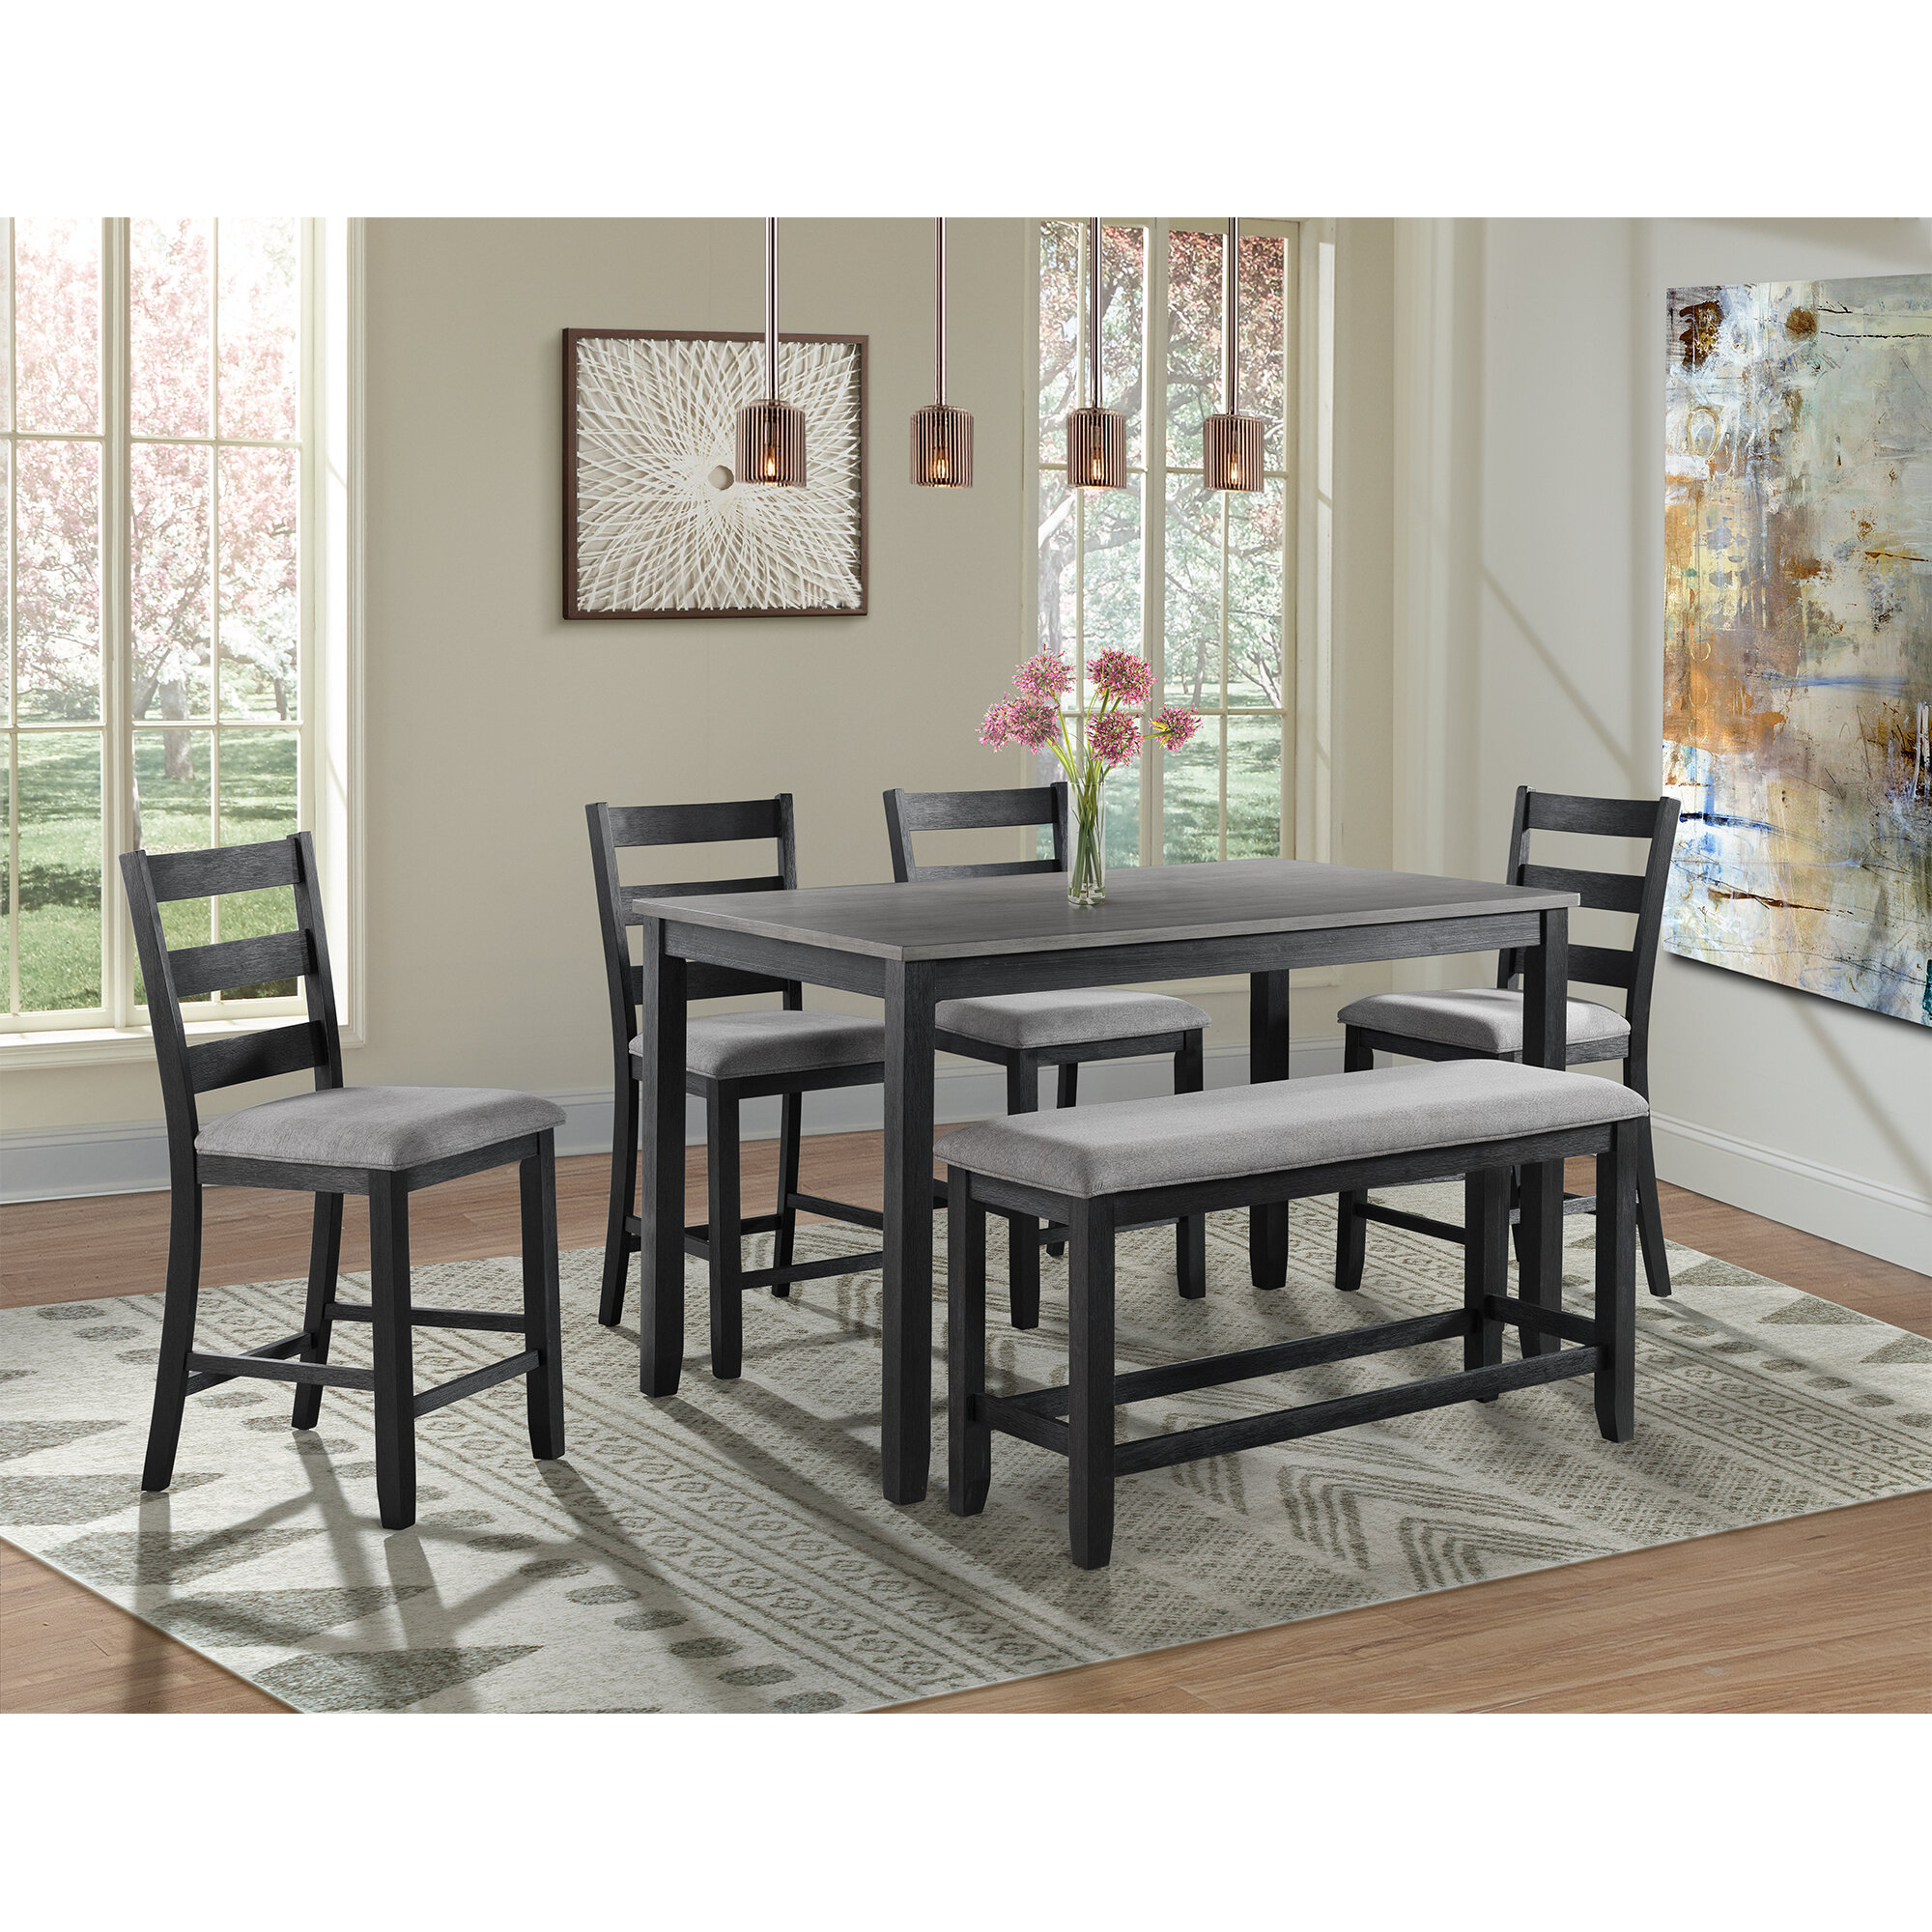 Alcott Hill Mavis Counter Height 6 Piece Pub Table Set Reviews Wayfair